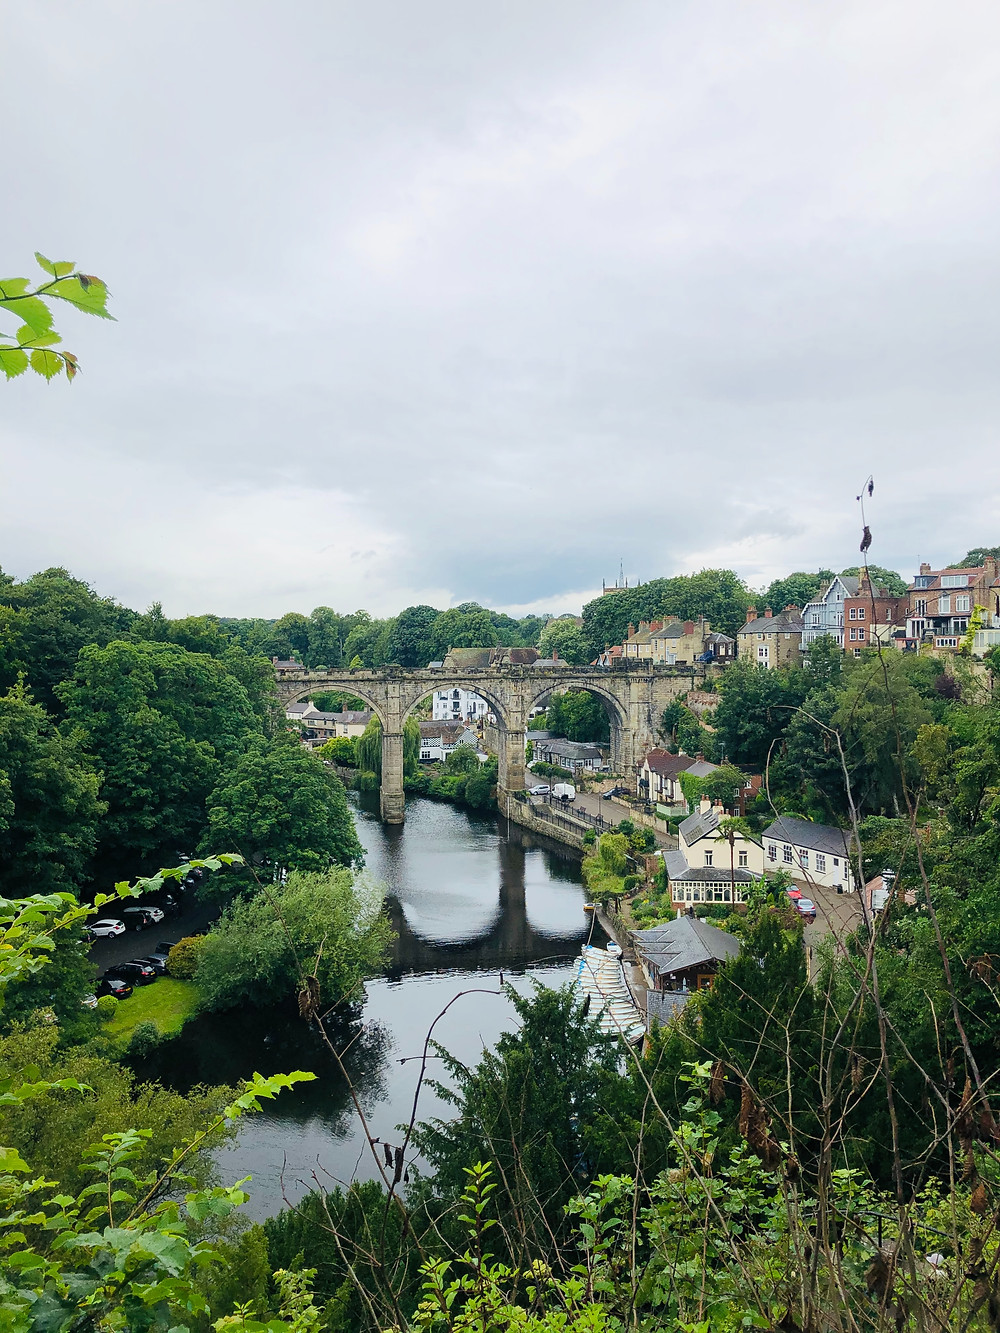 View of viaduct and river from Knaresborough Castle